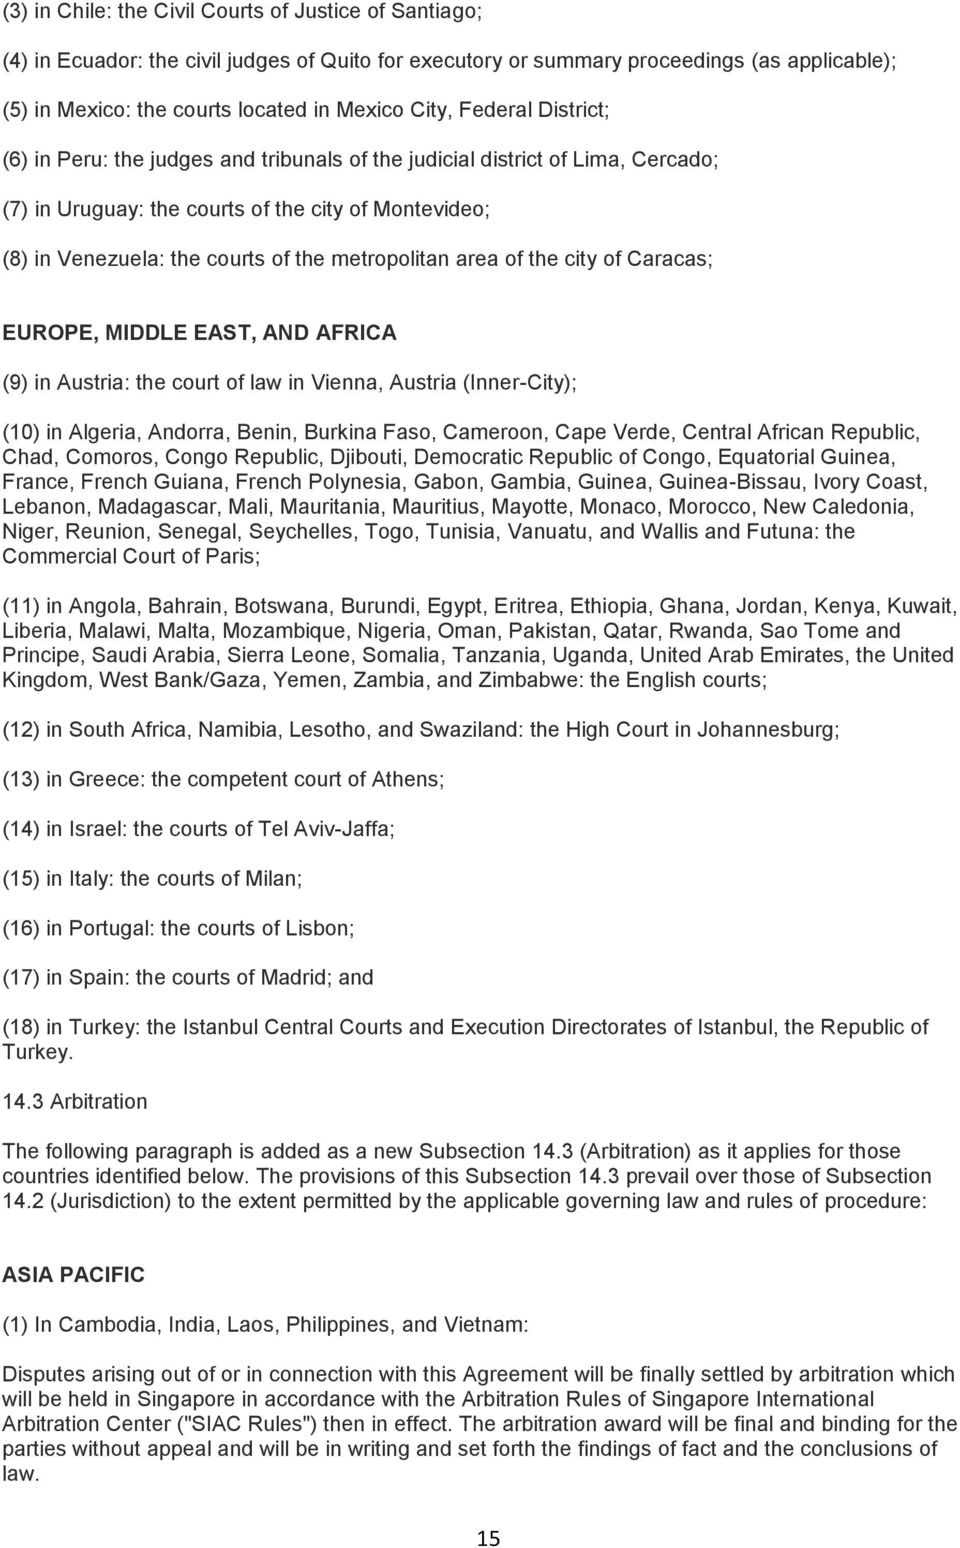 metropolitan area of the city of Caracas; EUROPE, MIDDLE EAST, AND AFRICA (9) in Austria: the court of law in Vienna, Austria (Inner-City); (10) in Algeria, Andorra, Benin, Burkina Faso, Cameroon,